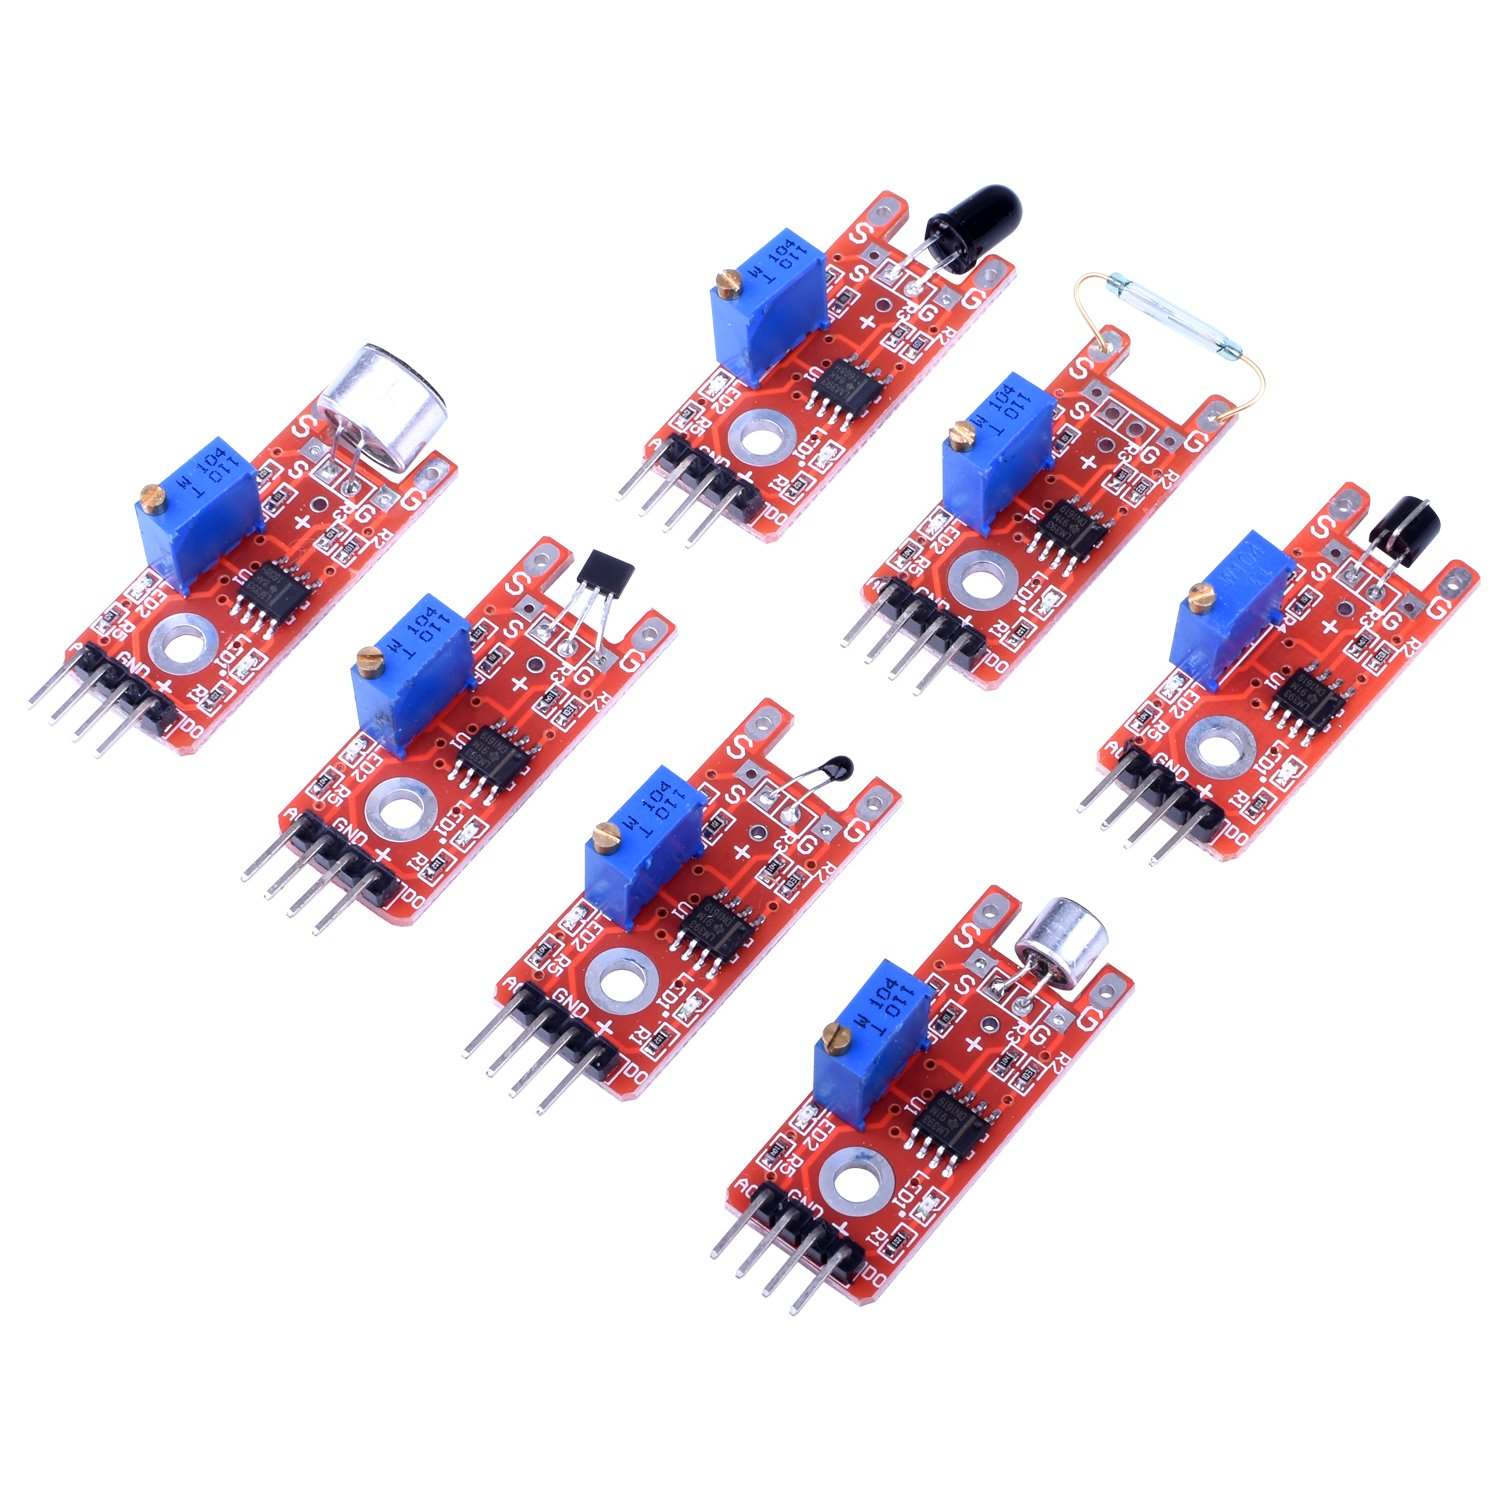 Quimat 39 In 1 Sensor Module Kit With Pdf Tutorialthe Starter Electronic Devices And Circuits Tutorials Robot Projects For Arduino Uno R3 Raspberry Pi 3 2 Mega Due Nano Programming